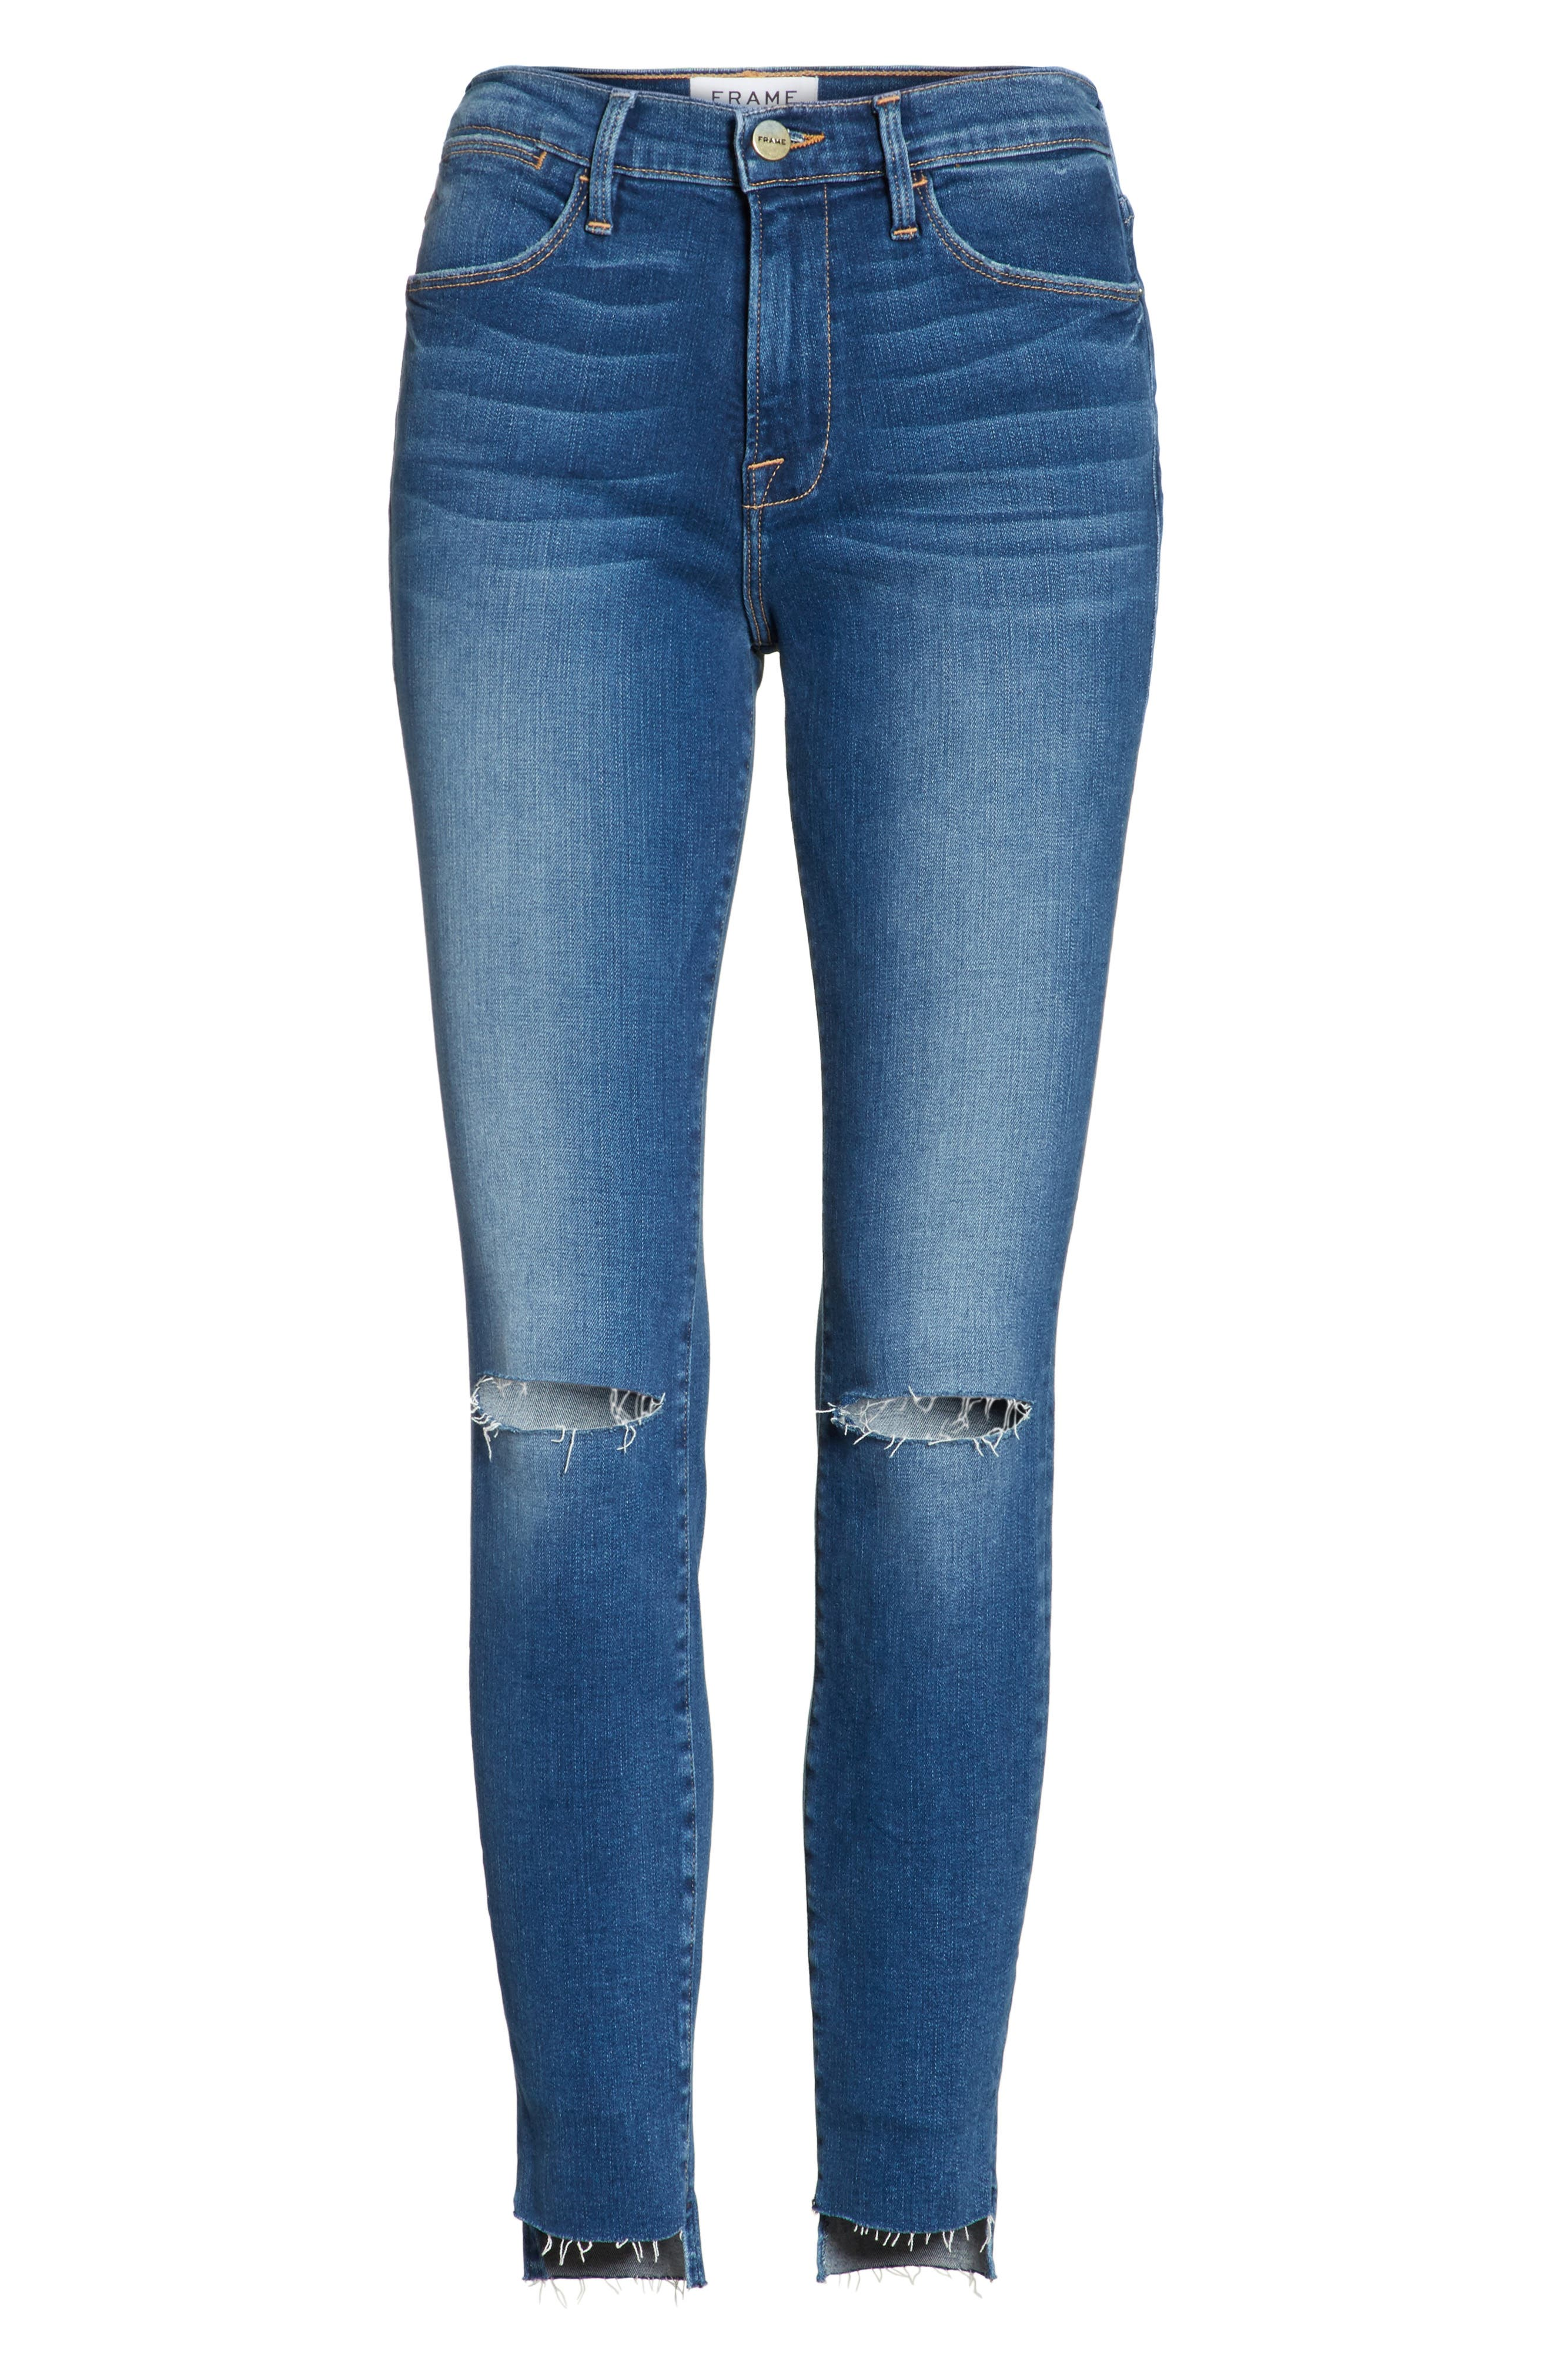 Le High High Waist Ankle Skinny Jeans,                             Alternate thumbnail 6, color,                             420